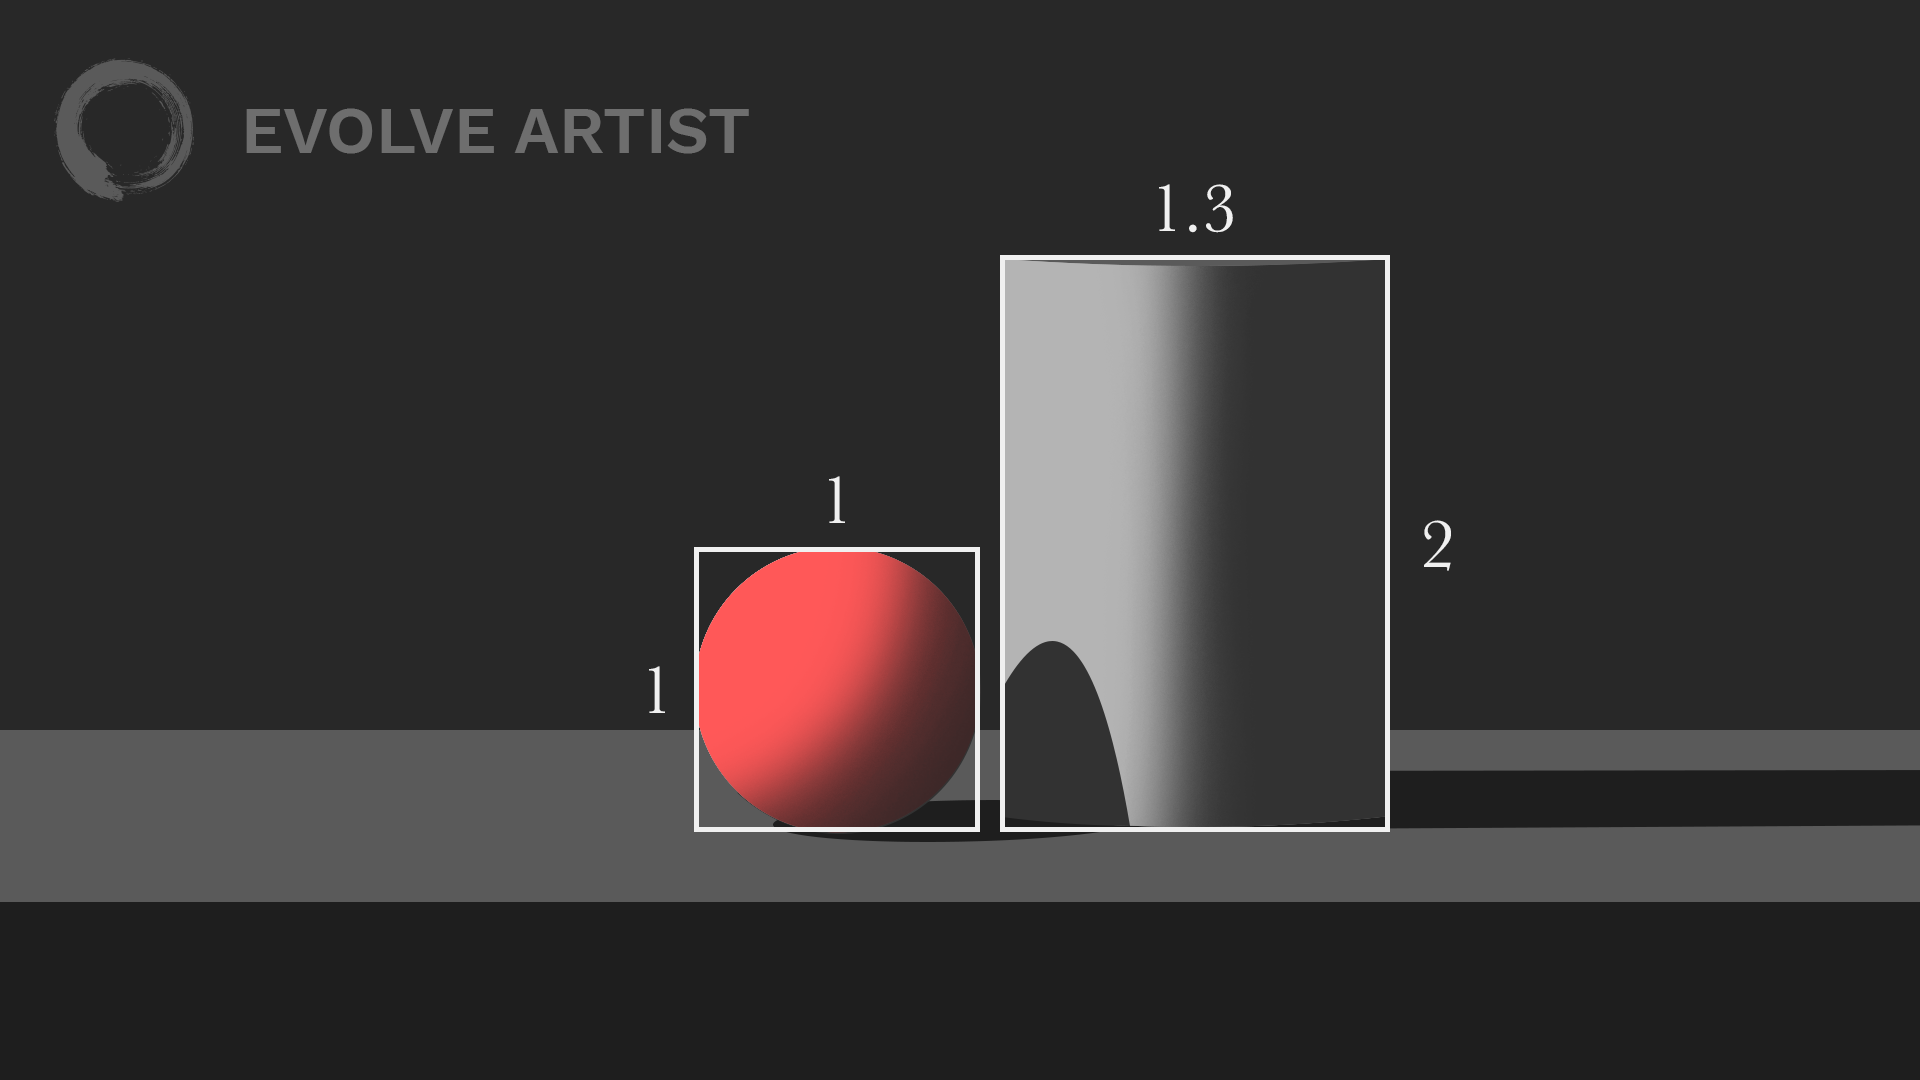 Evolve Artist uses relative measurements to practice proportional drawing.